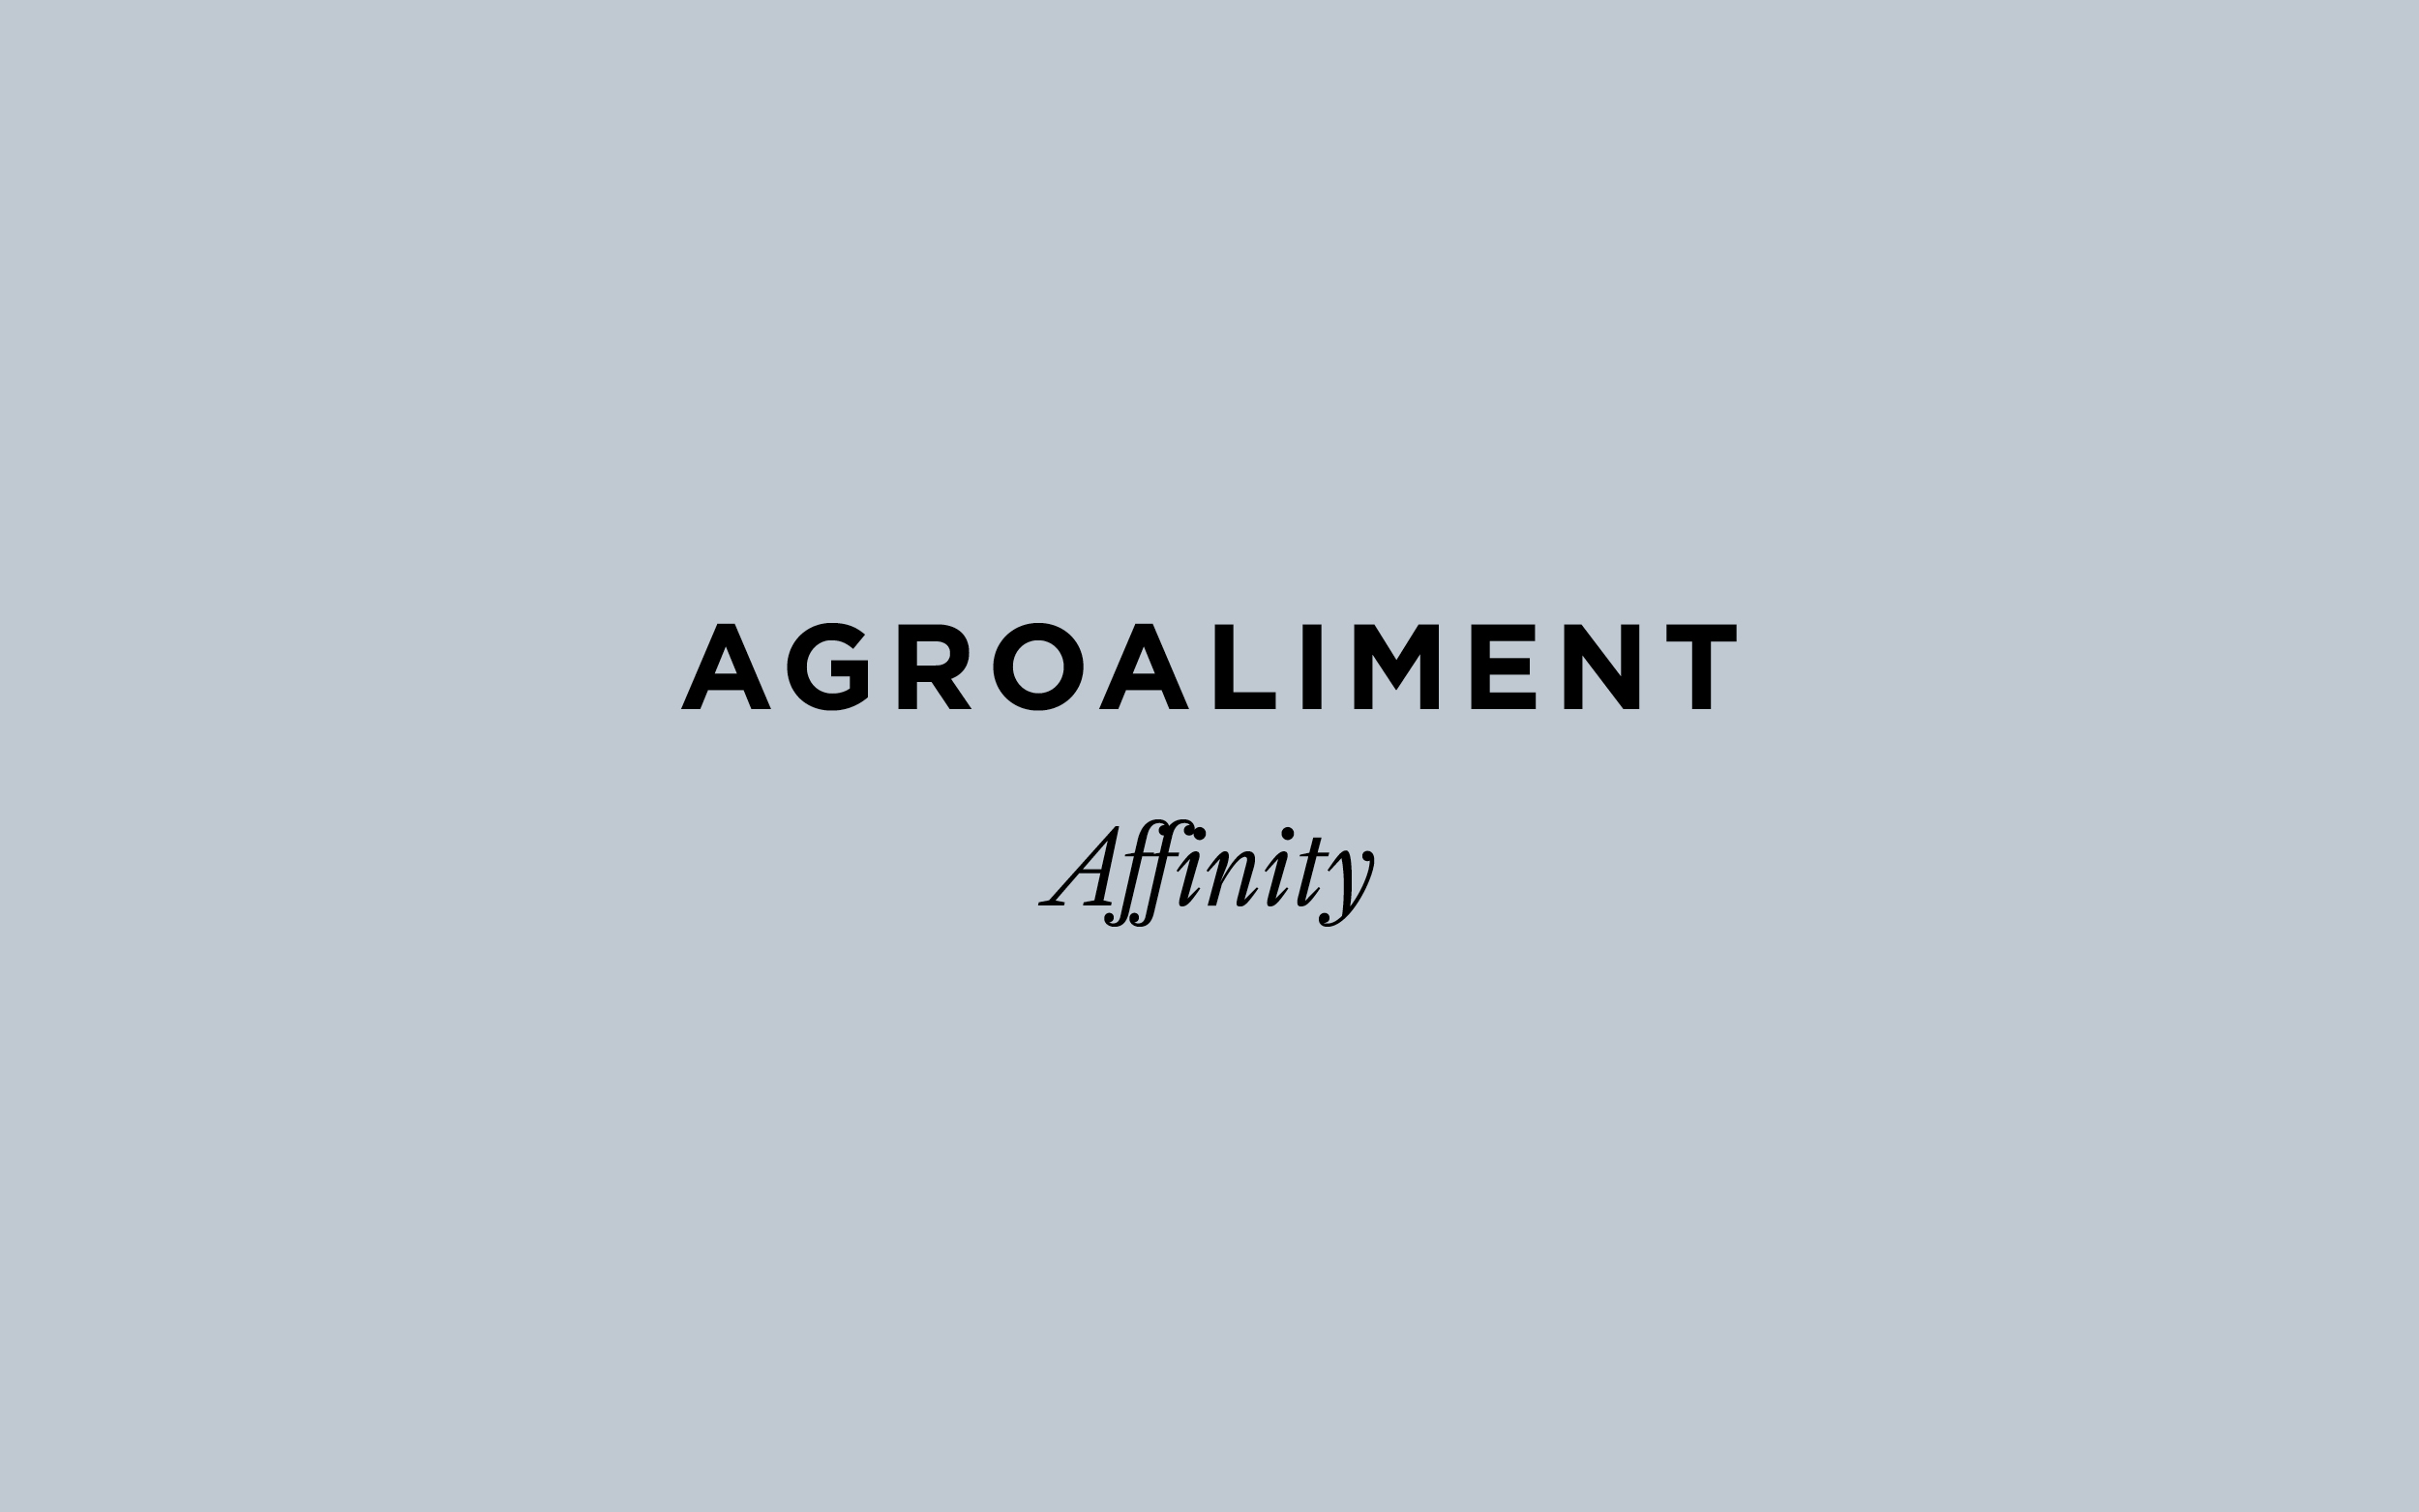 Agroaliment Affinity